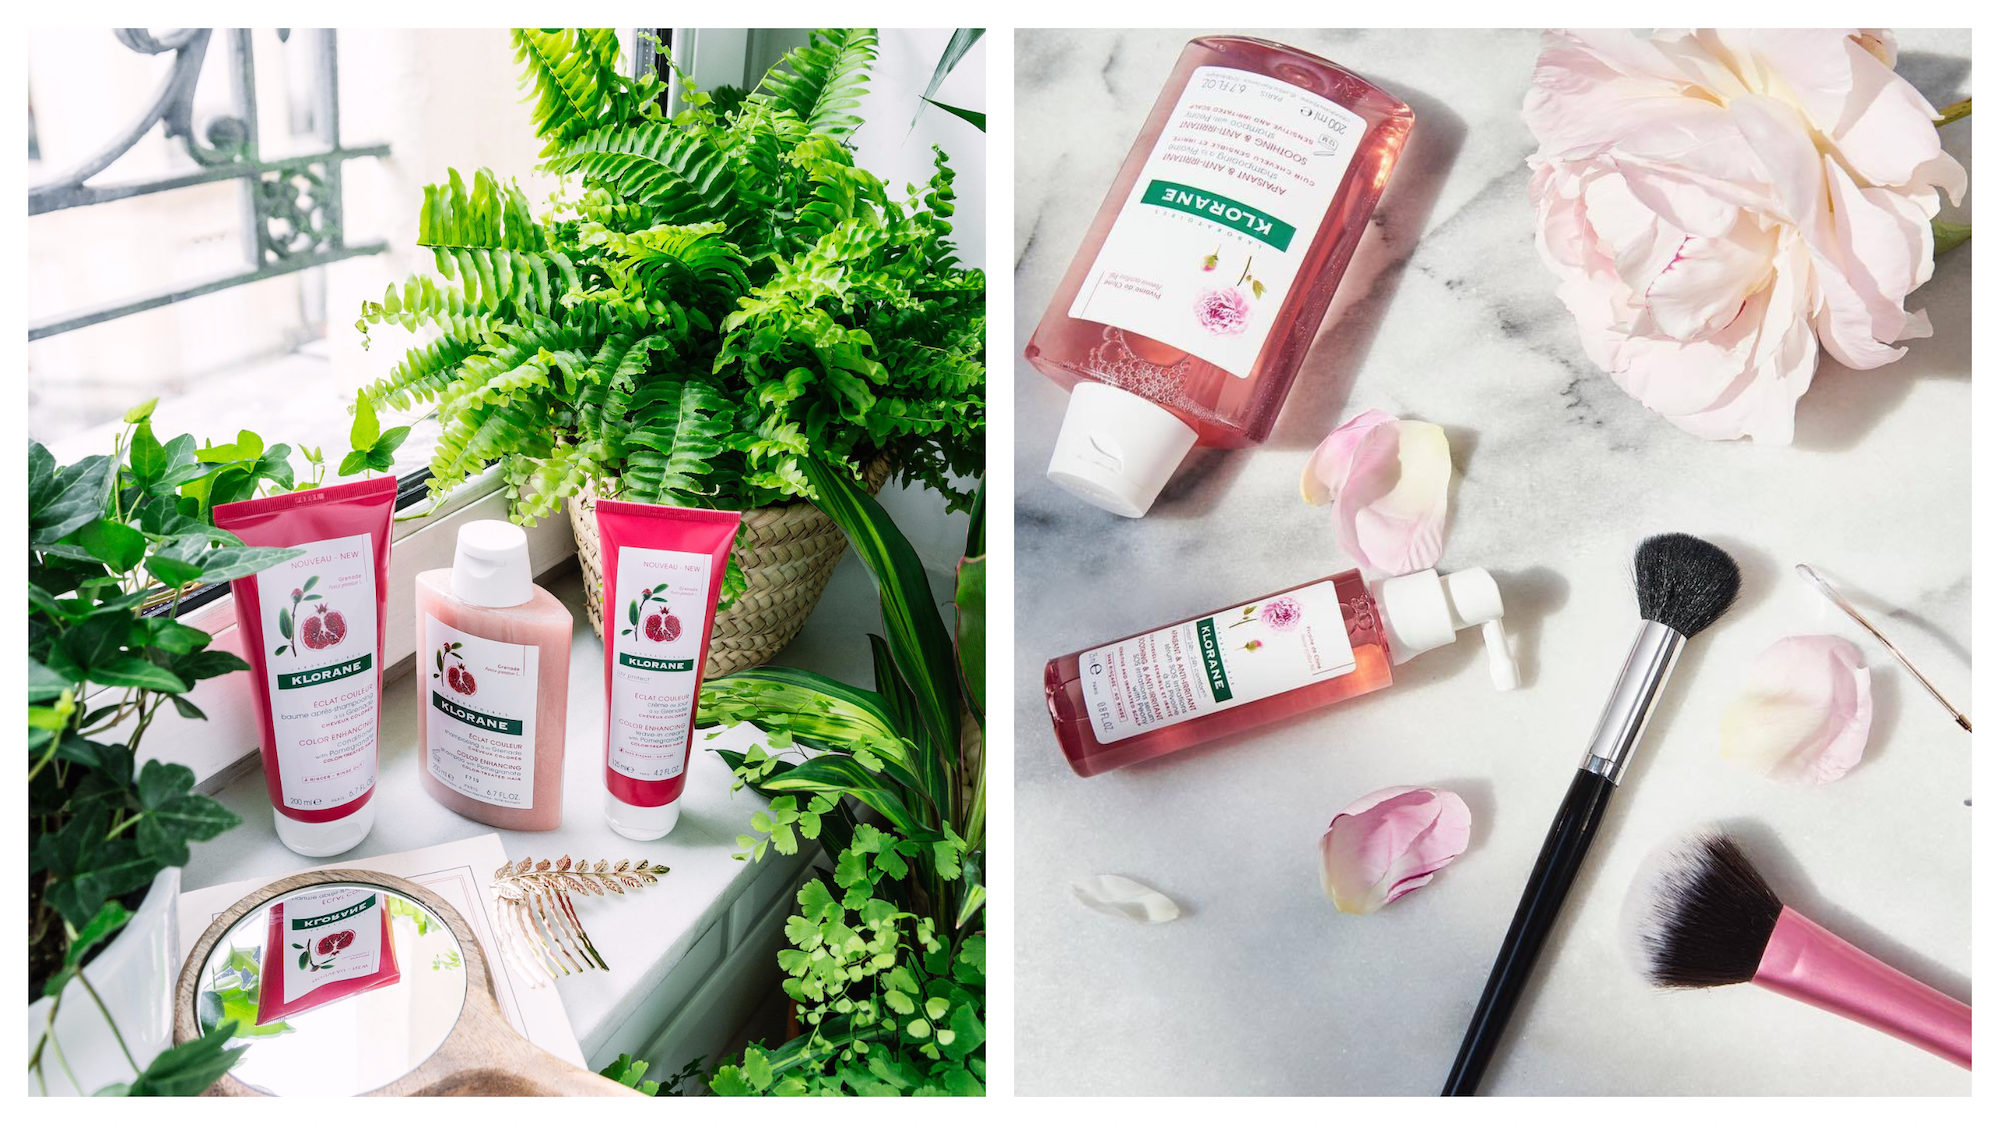 Buy French beauty products for less in Paris, like these Klorane hair care products set up next to leafy green plants on a windowsill (left). And these Klorane lotions and potions arranged on a marble top next to makeup brushes and rose petals (right).